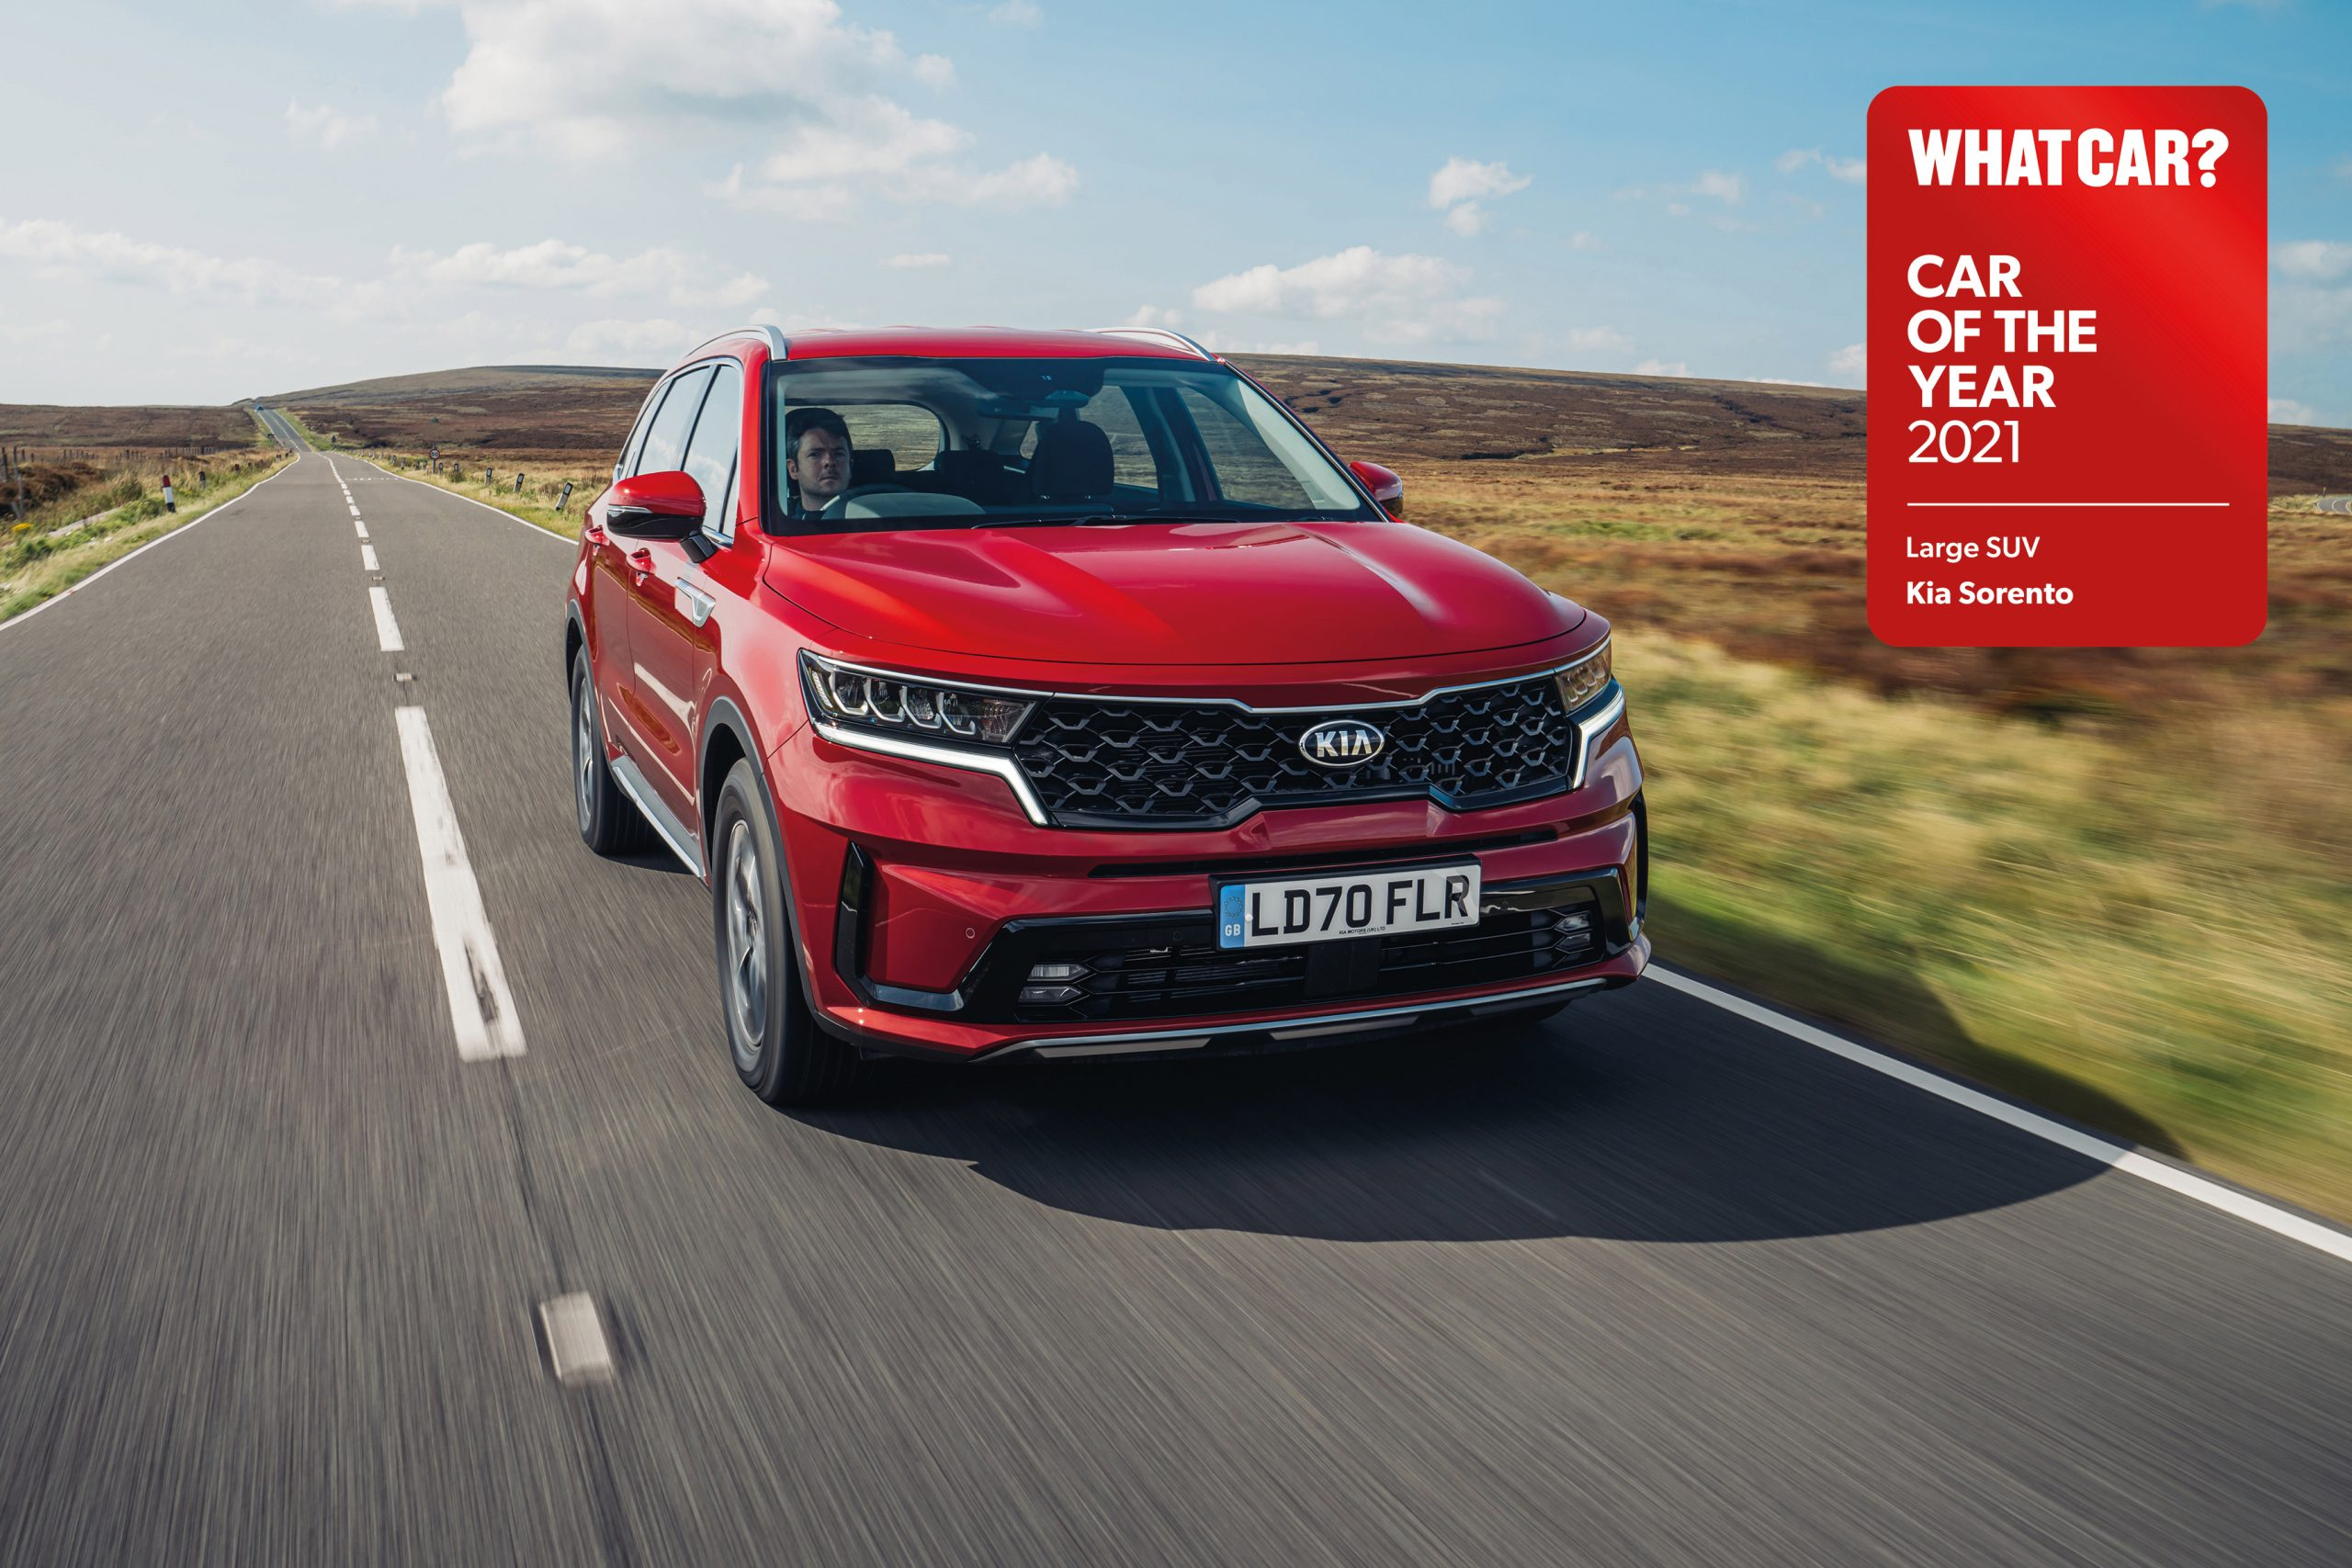 Sorento wins 'Large SUV of the year' at 2021 What Car? Car of the Year awards